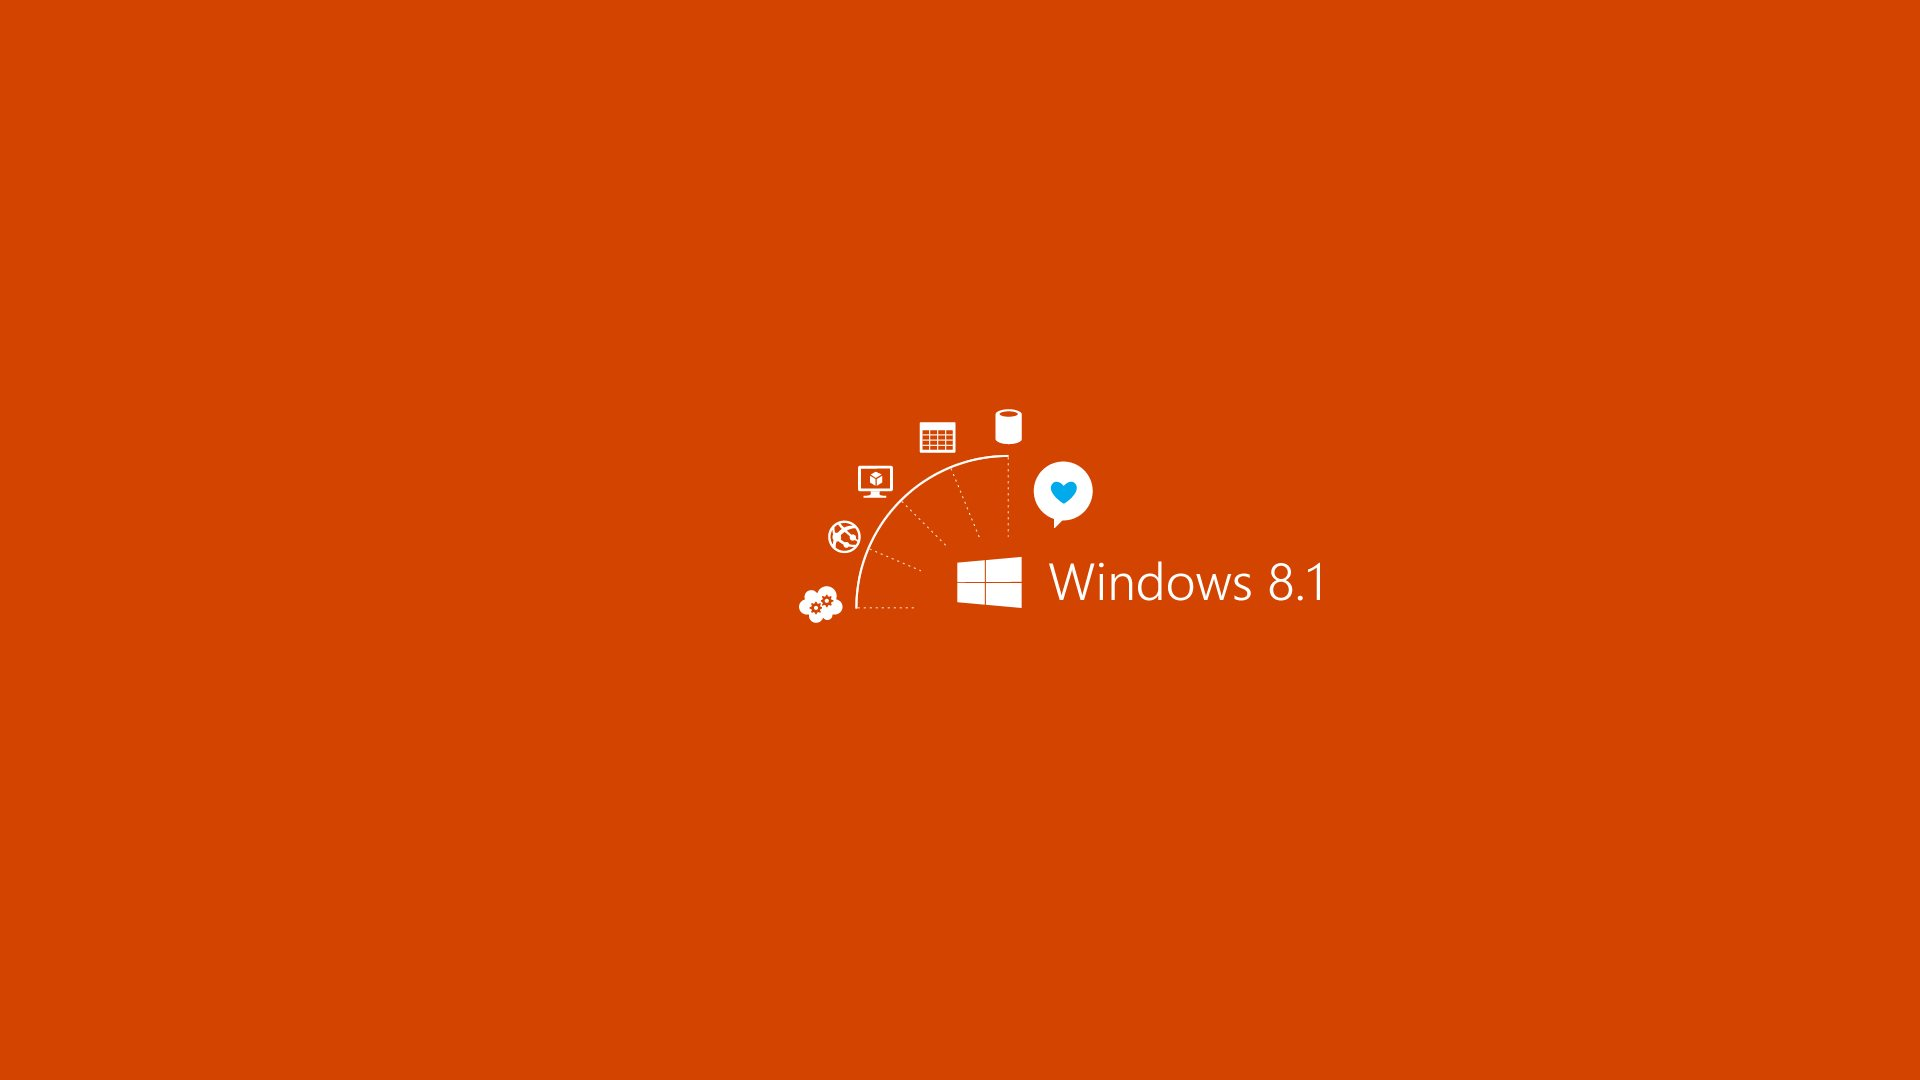 Windows 81 Full HD Wallpaper And Background Image